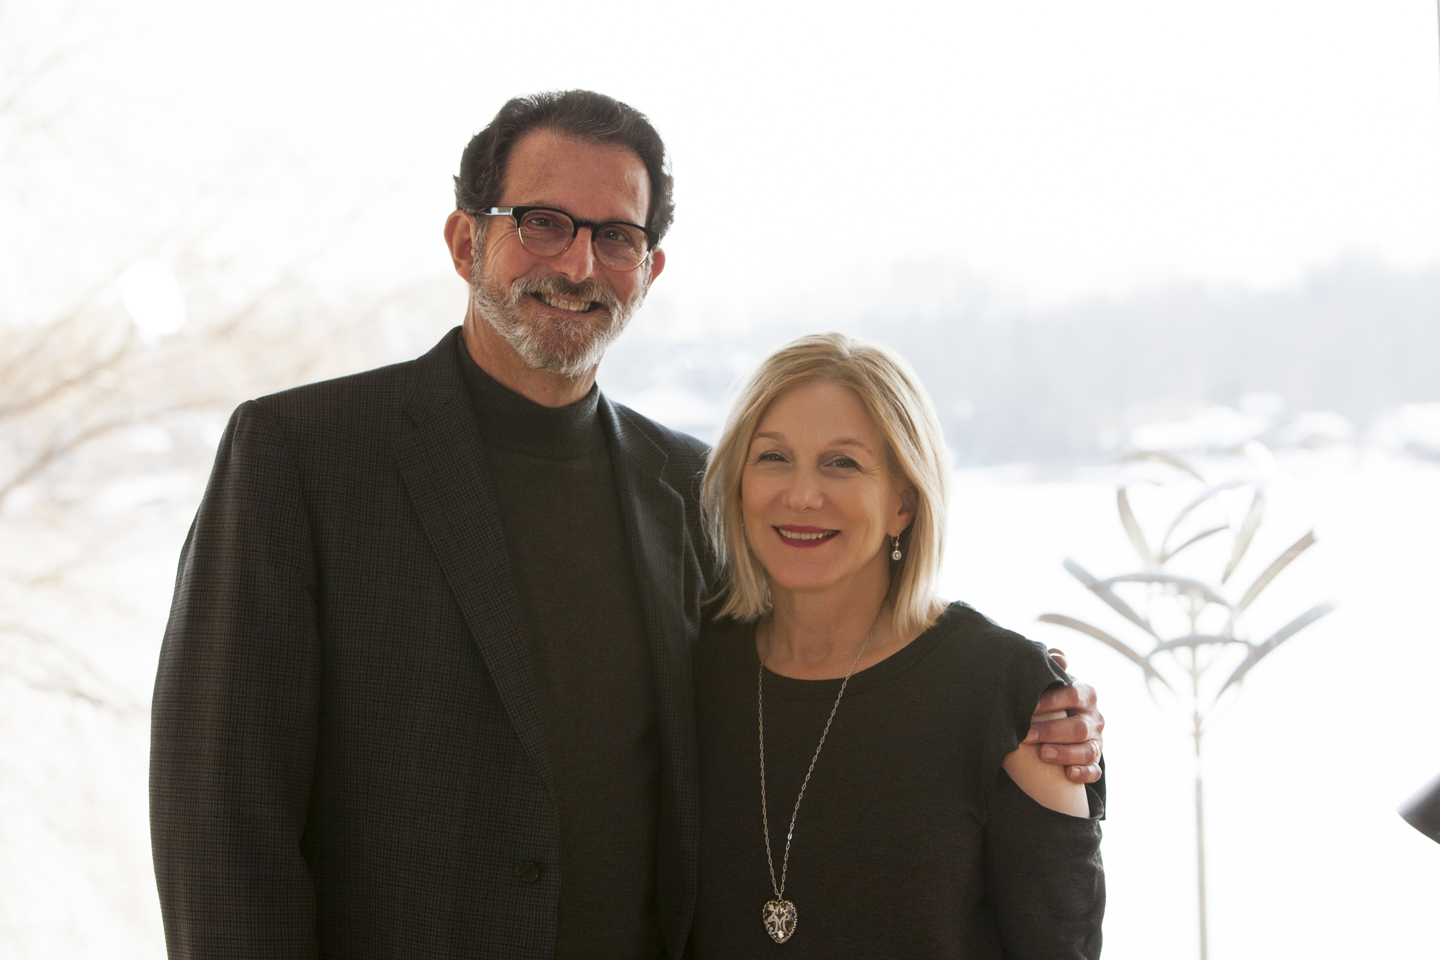 Jeff and Miriam Forman